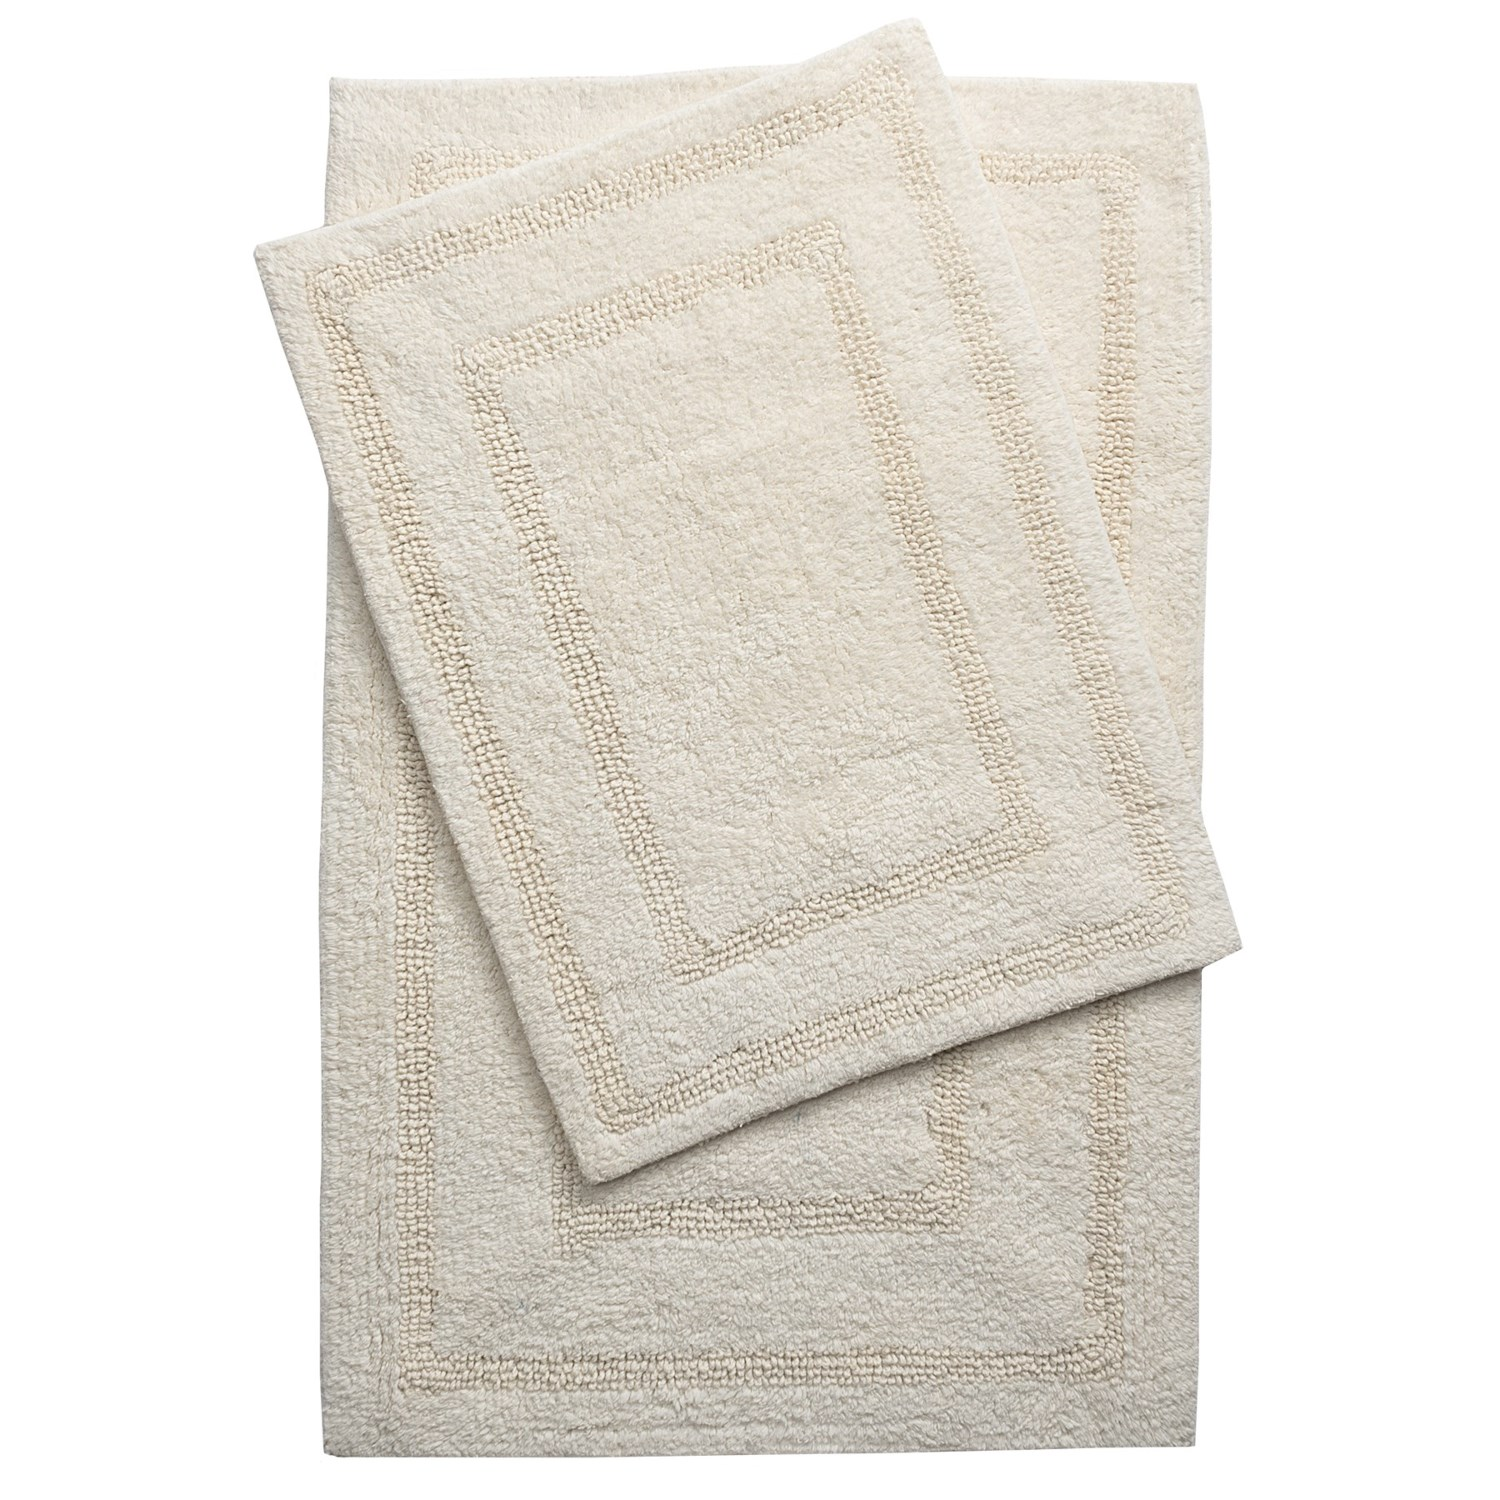 Vista Home Grand Hotel Collection Tranquil Cotton Bath Rug 21x34 17x24 Reversible Save 41